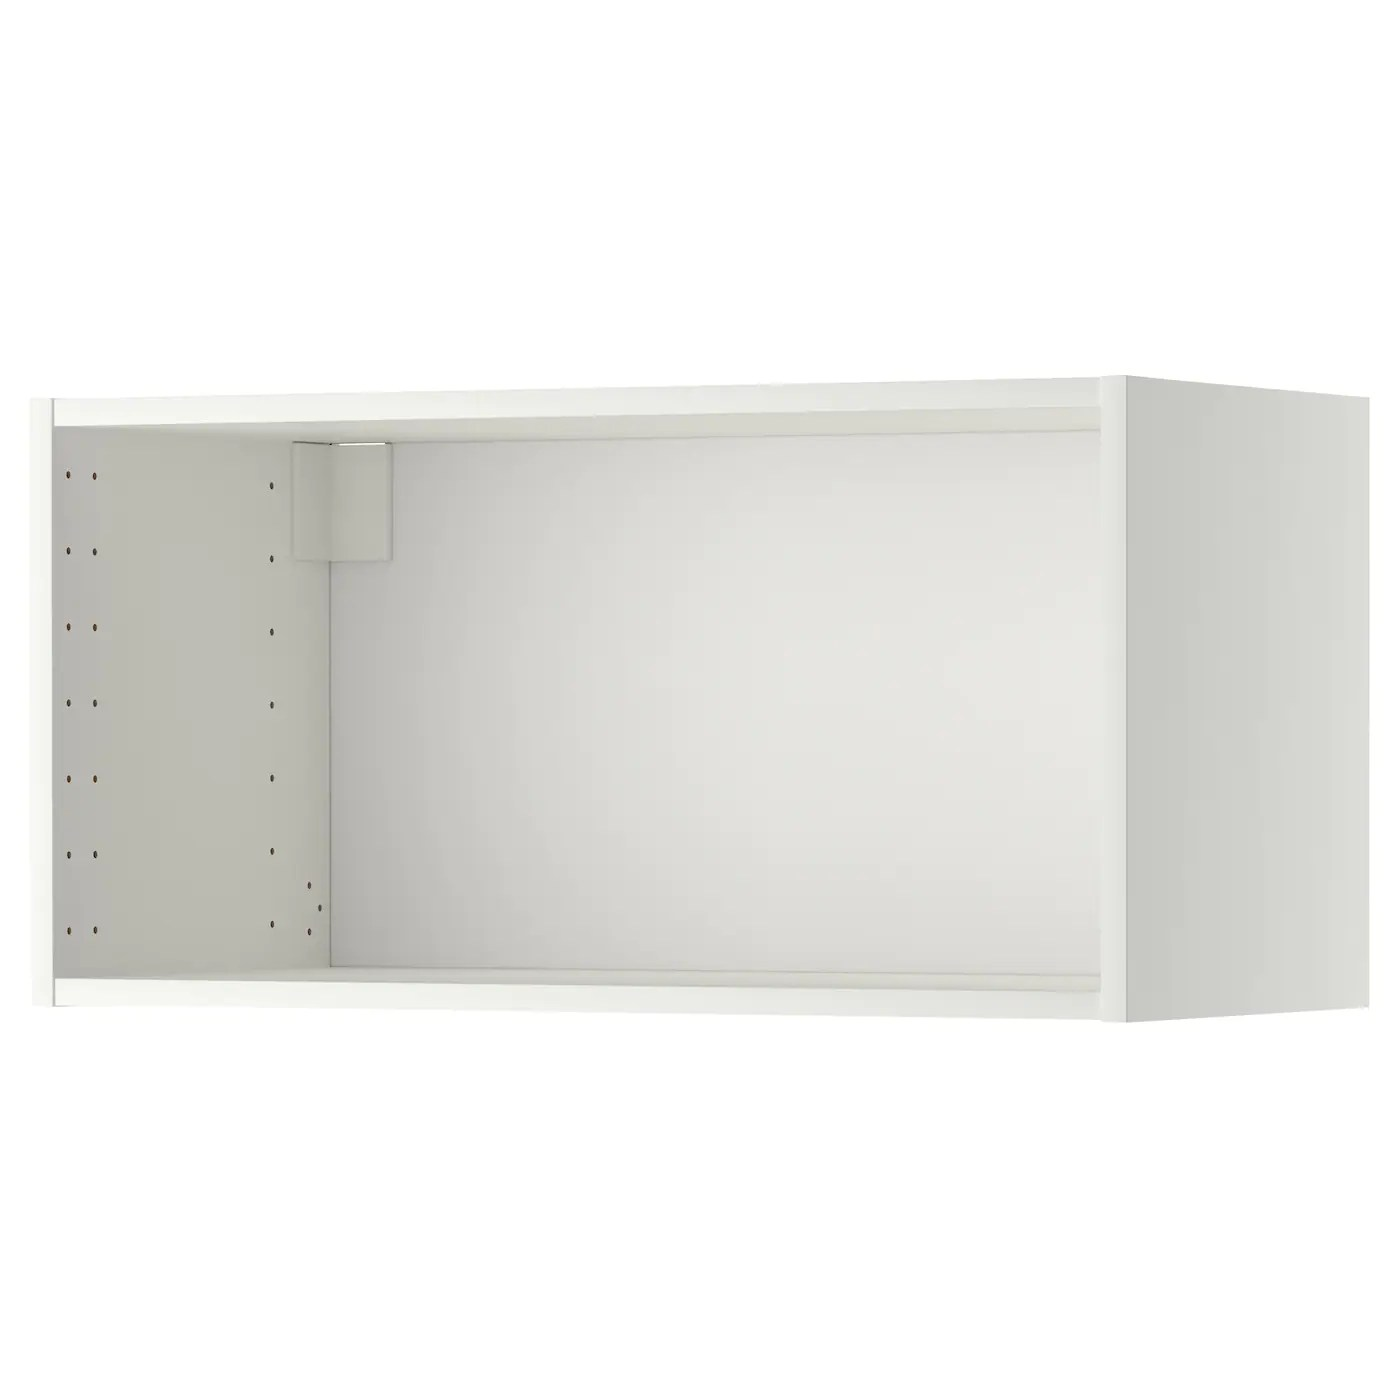 metod structure element mural blanc 80x37x40 cm